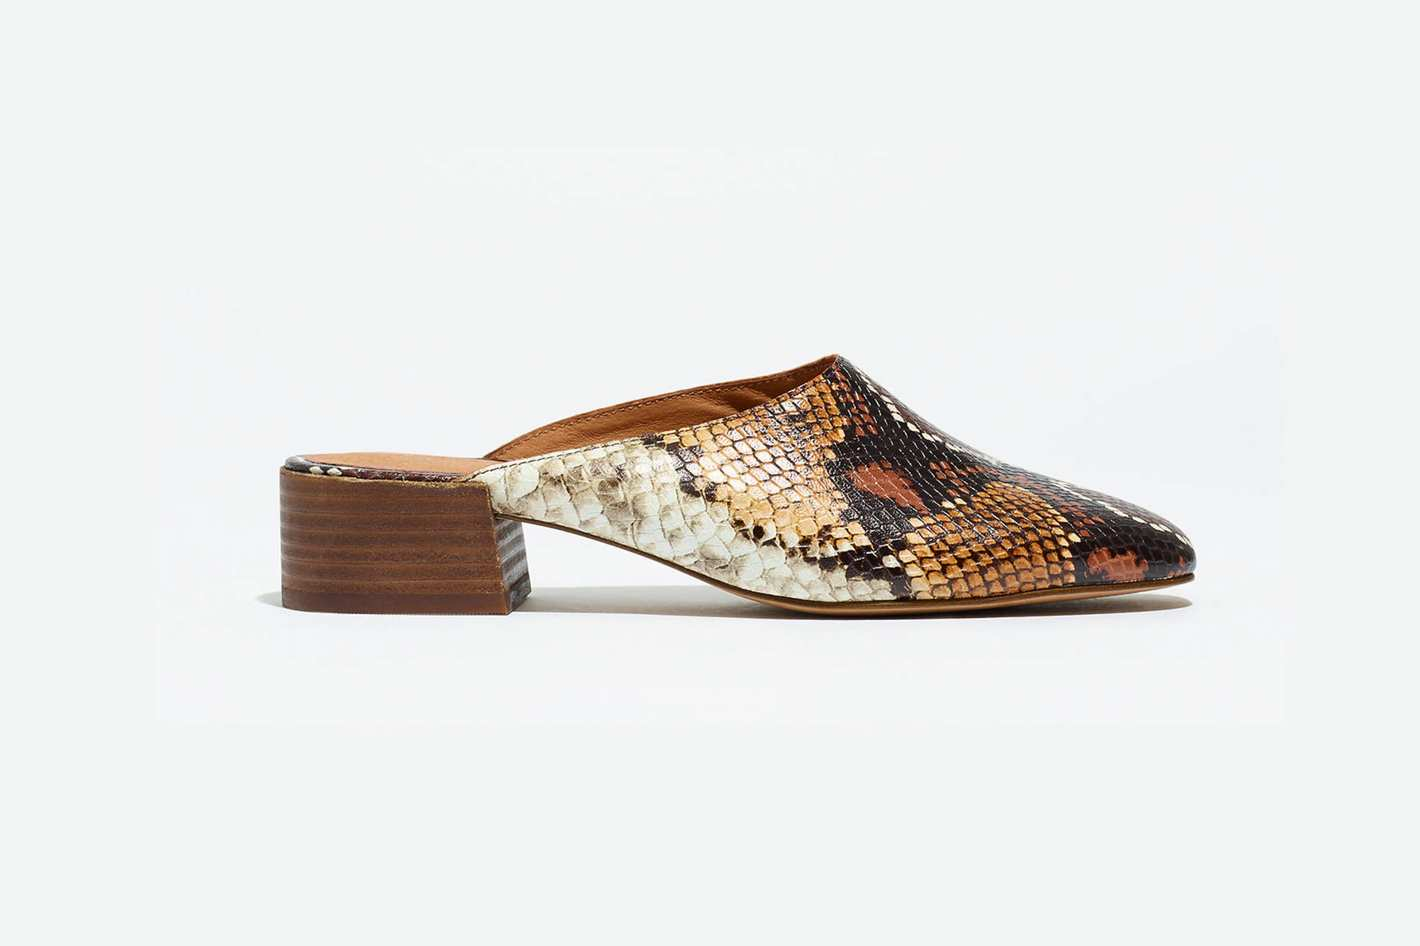 Madewell Alicia Mule in Snake Embossed Leather